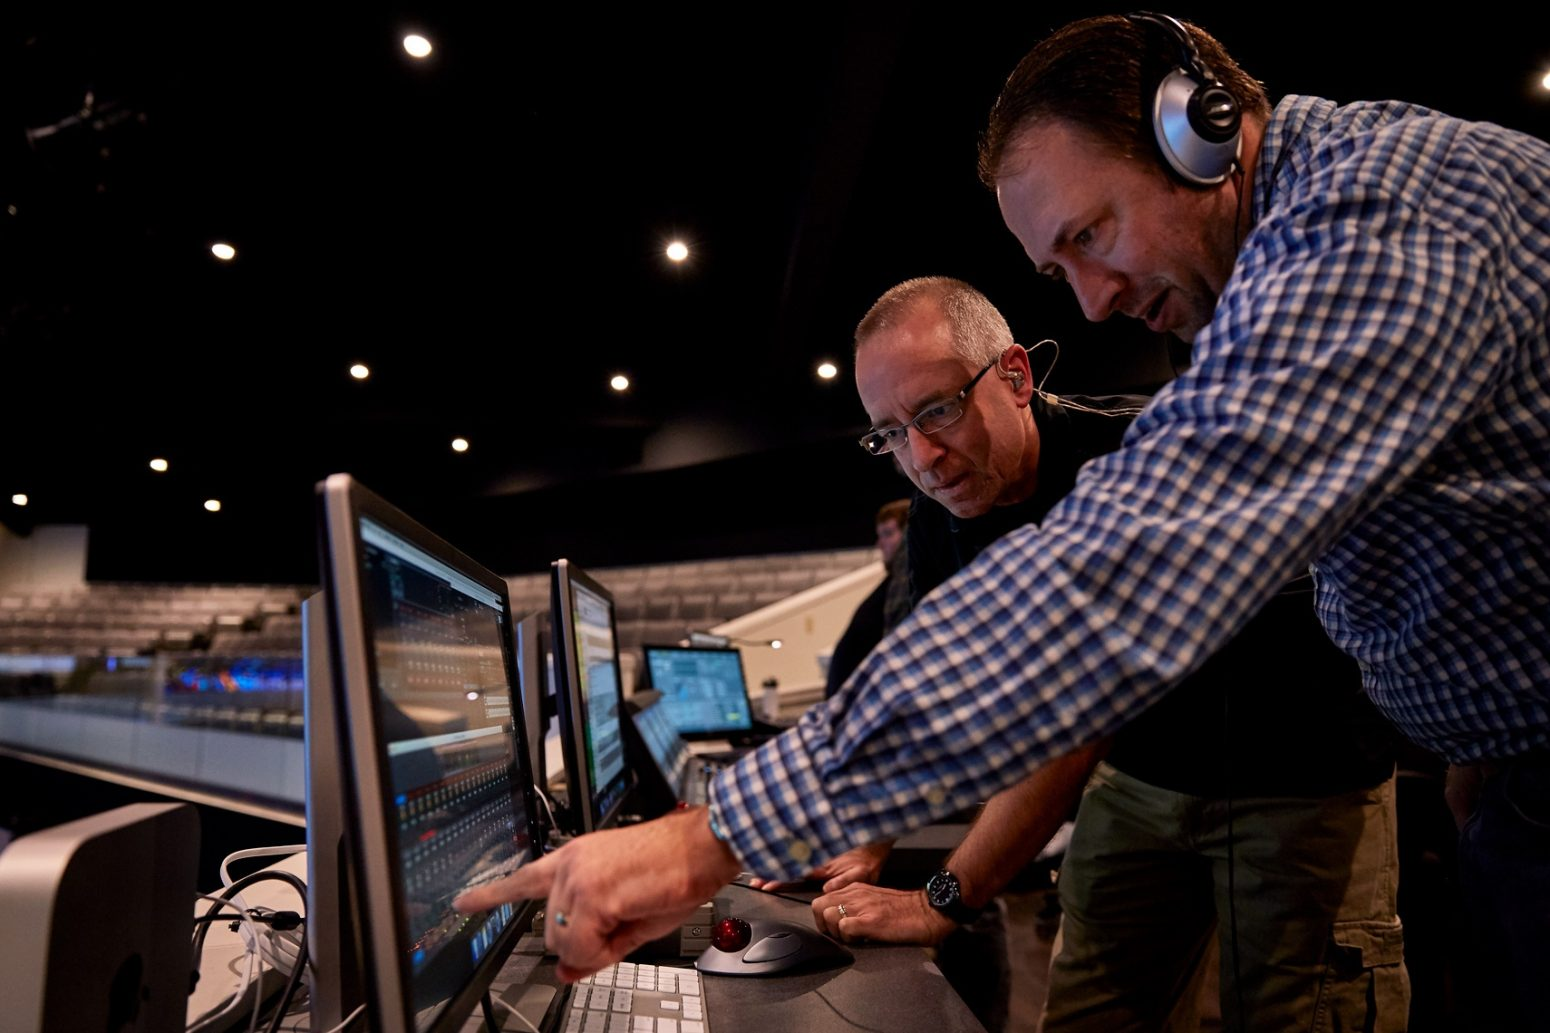 Audio design and AVL sound experts from Paragon 360 discuss a sound design project.